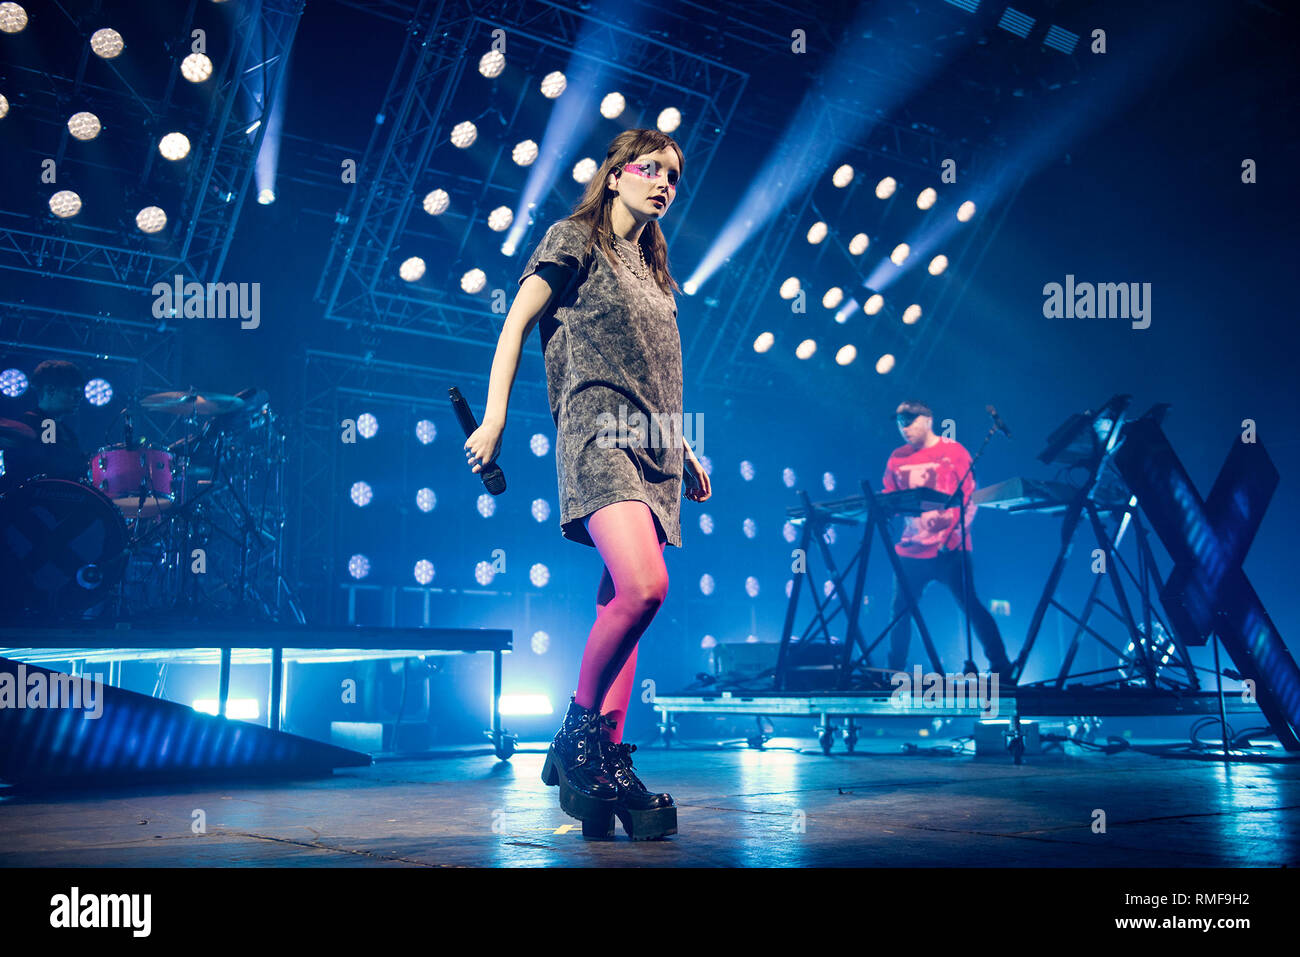 Manchester, UK. 14th Feb, 2019. Lauren Mayberry, Iain Cook and Martin Doherty of synth pop band Chvrches perform at the Victoria Warehouse, Manchester 2019-02-14 Credit: Gary Mather/Alamy Live News - Stock Image